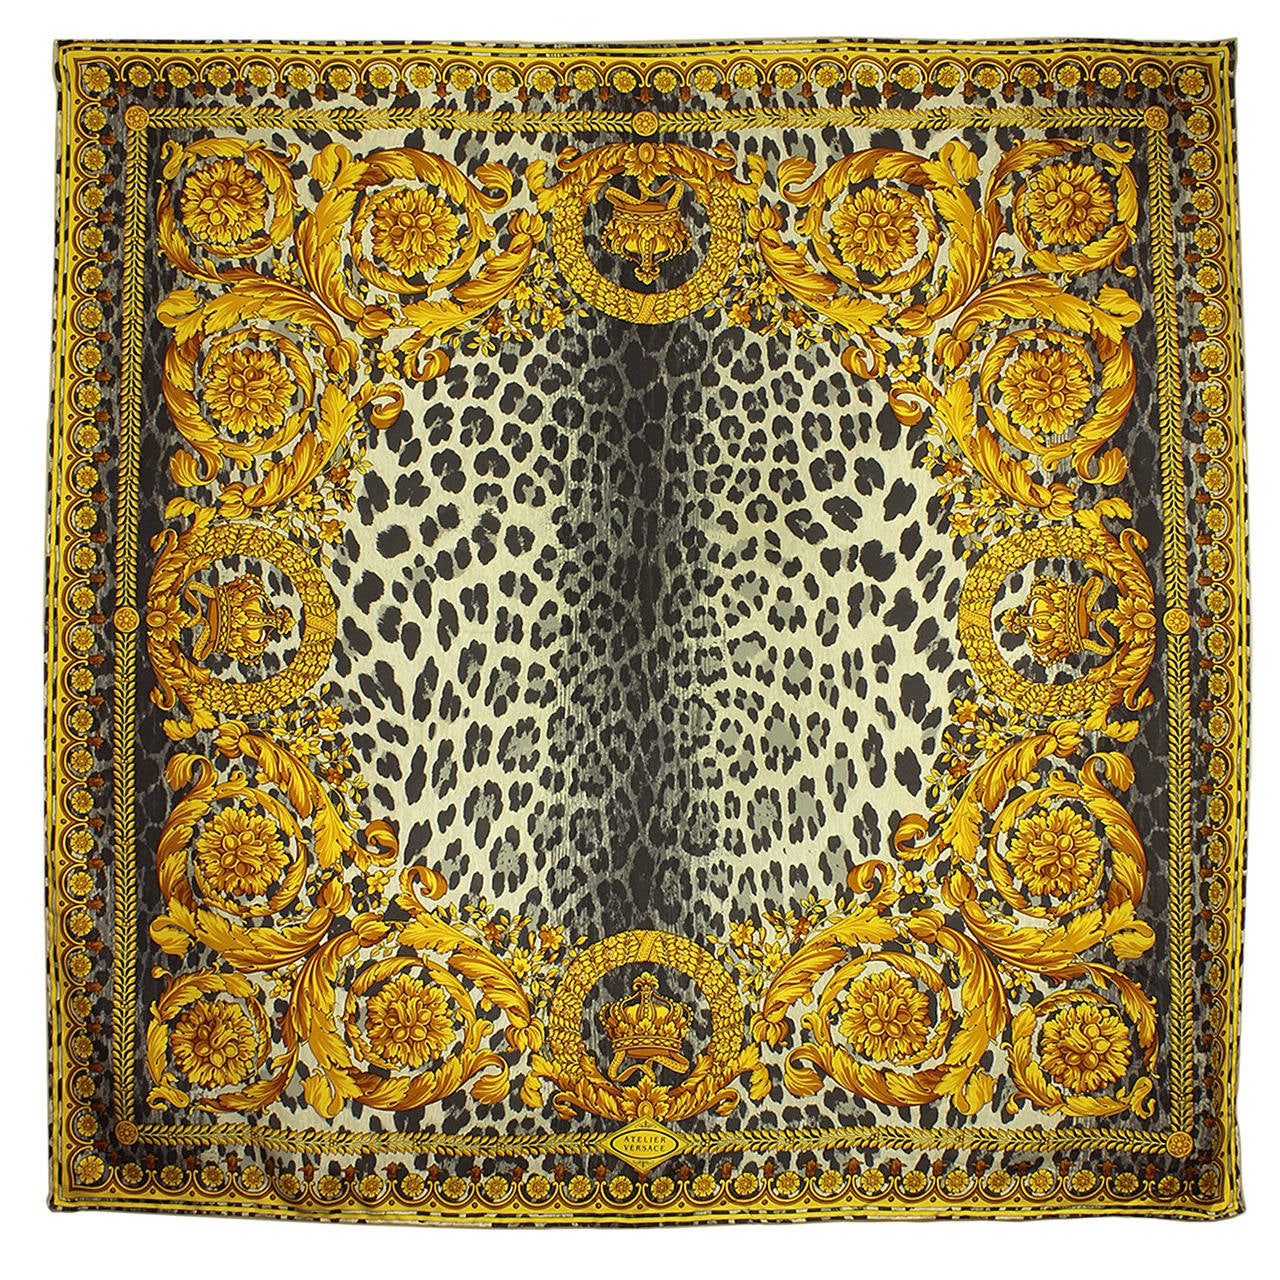 Atelier Versace 1990s Baroque and Leopard Print Silk Scarf ...